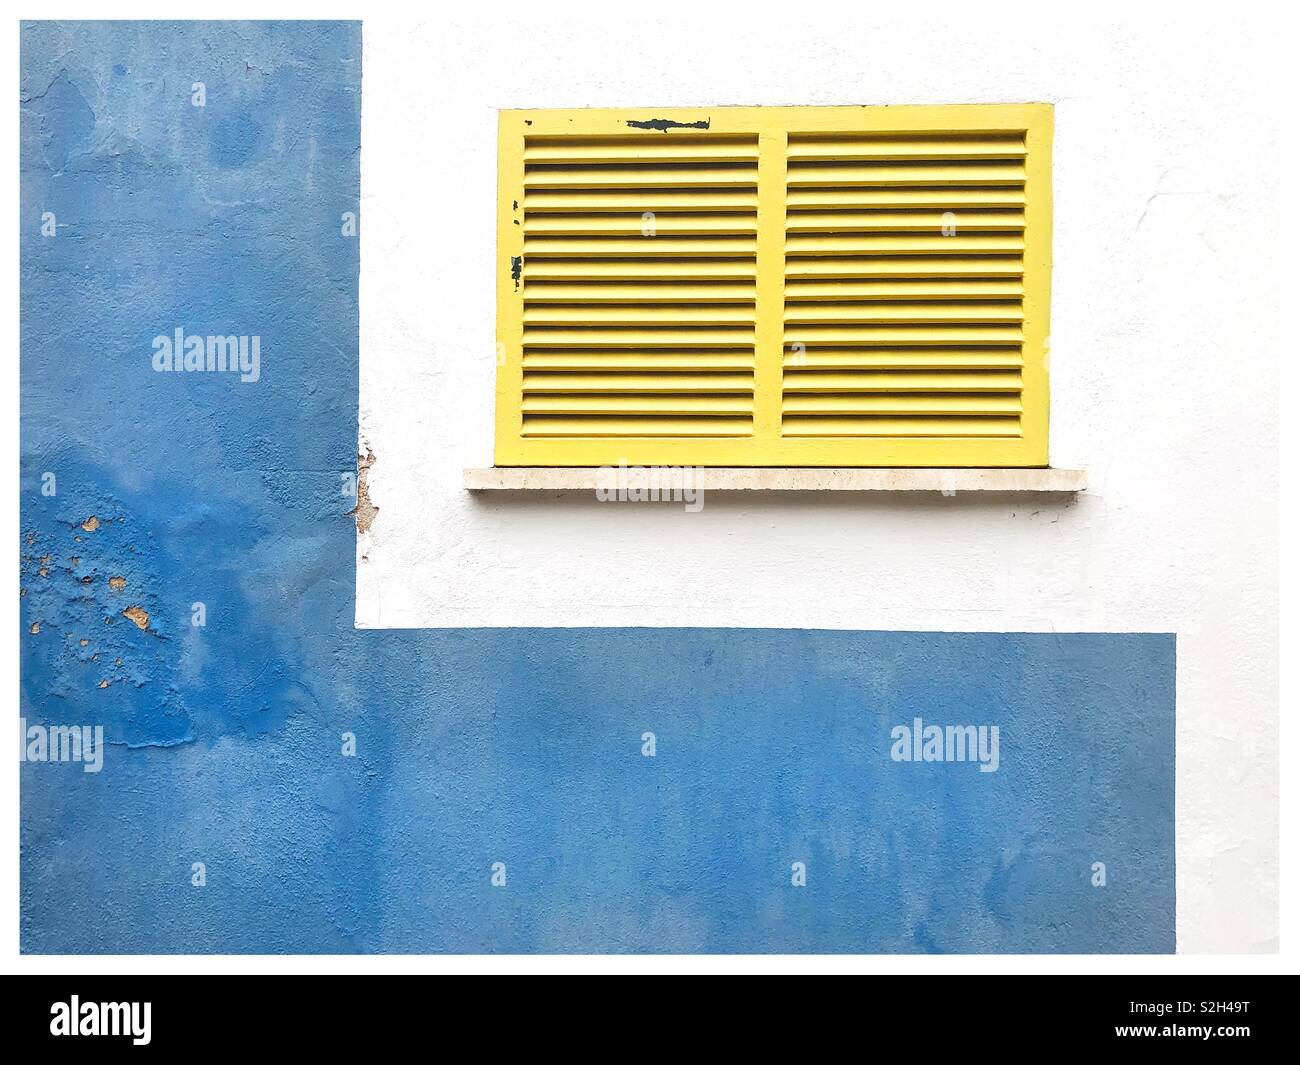 Yellow shutters on a window surrounded by a white an blue painted wall - Stock Image